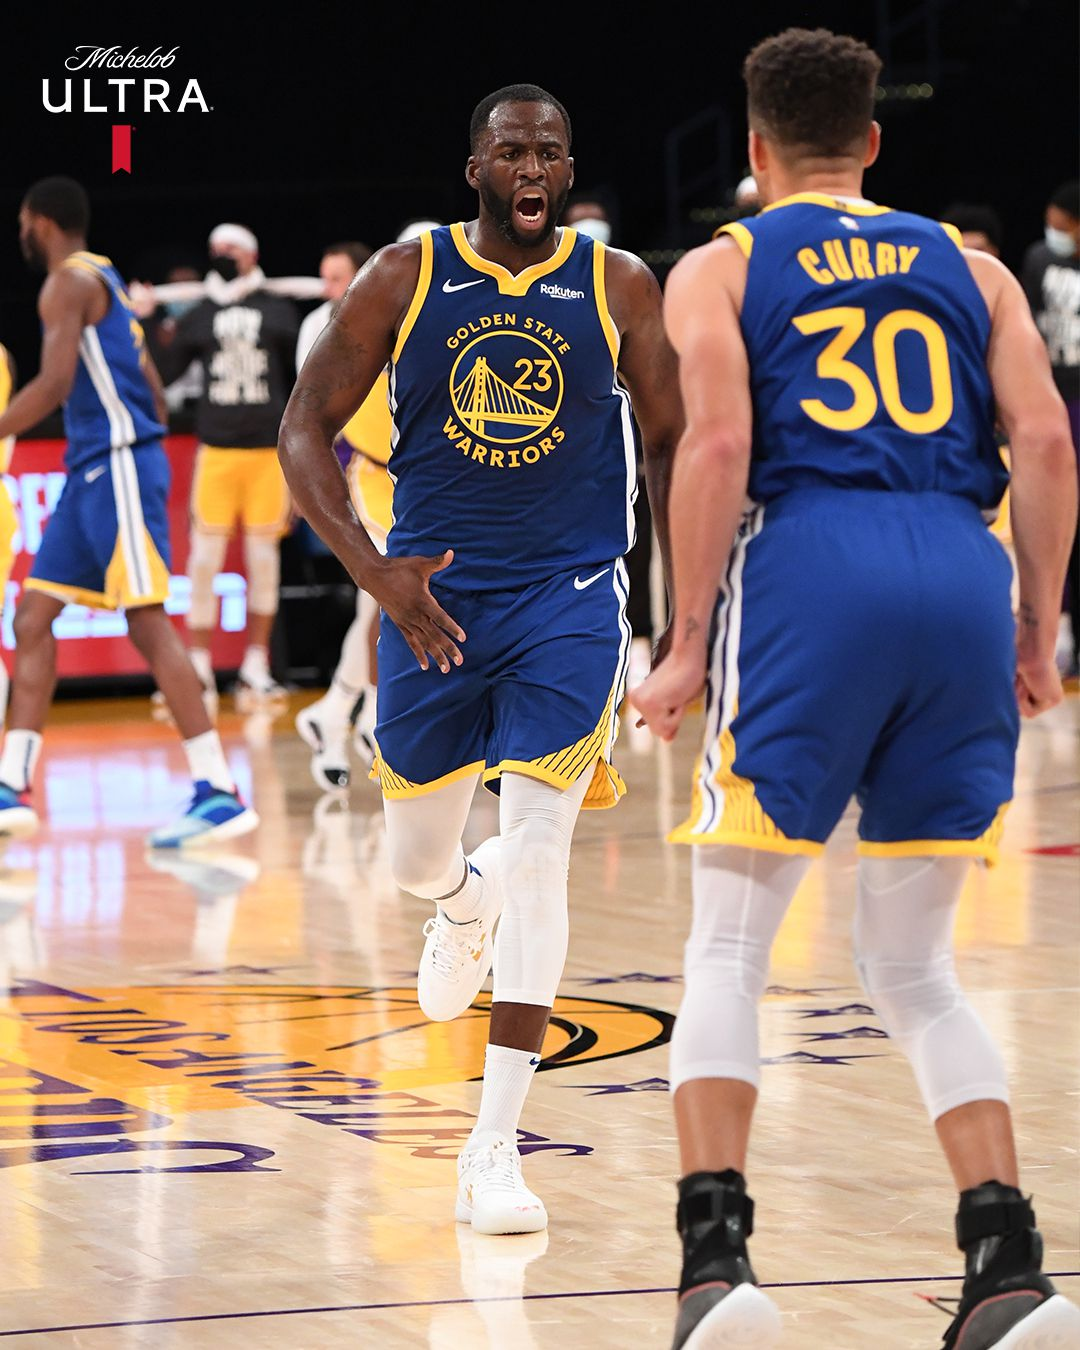 Les Warriors renversent les Lakers au Staples Center en effaçant un déficit de 16 points